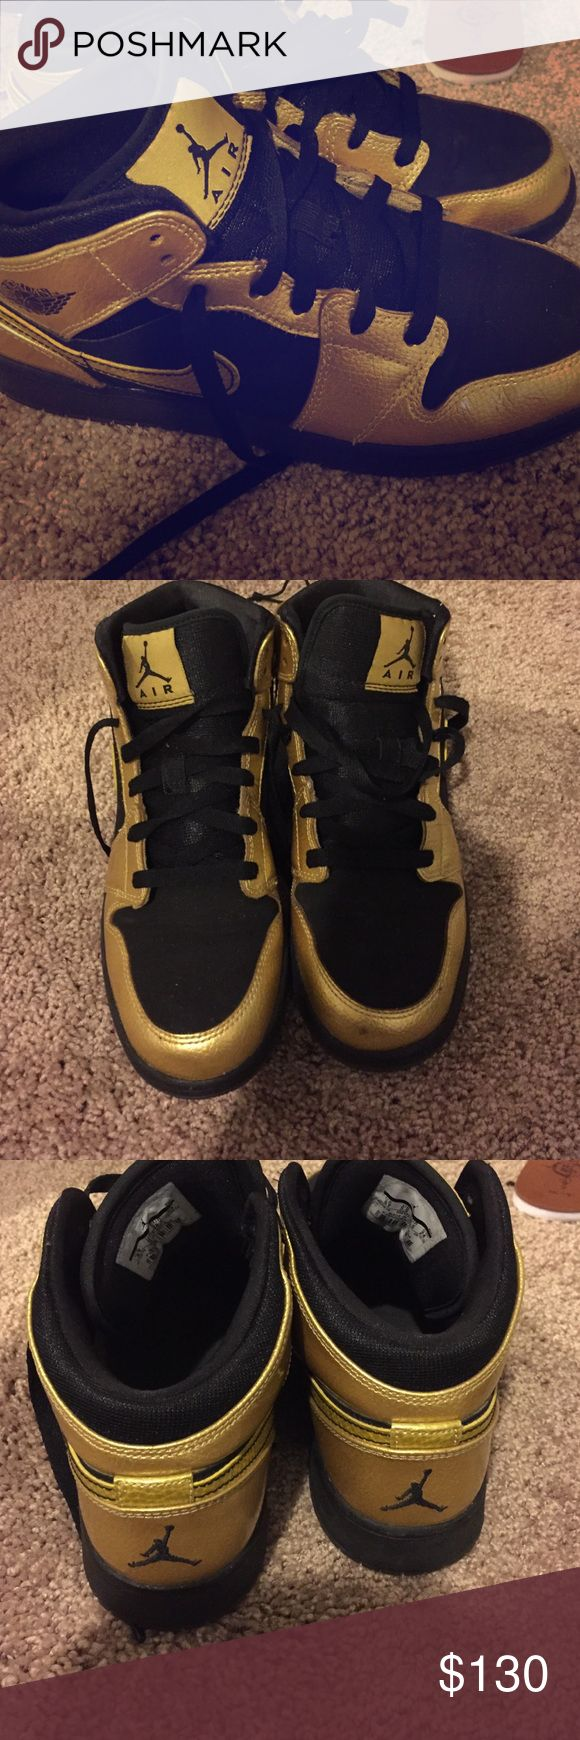 Black and gold rare Jordan 1's Black and gold jordan 1's. Used but in good condition just small scuff on front that can be fixed or buffed..size 6 in boys women 8 Jordan Shoes Sneakers